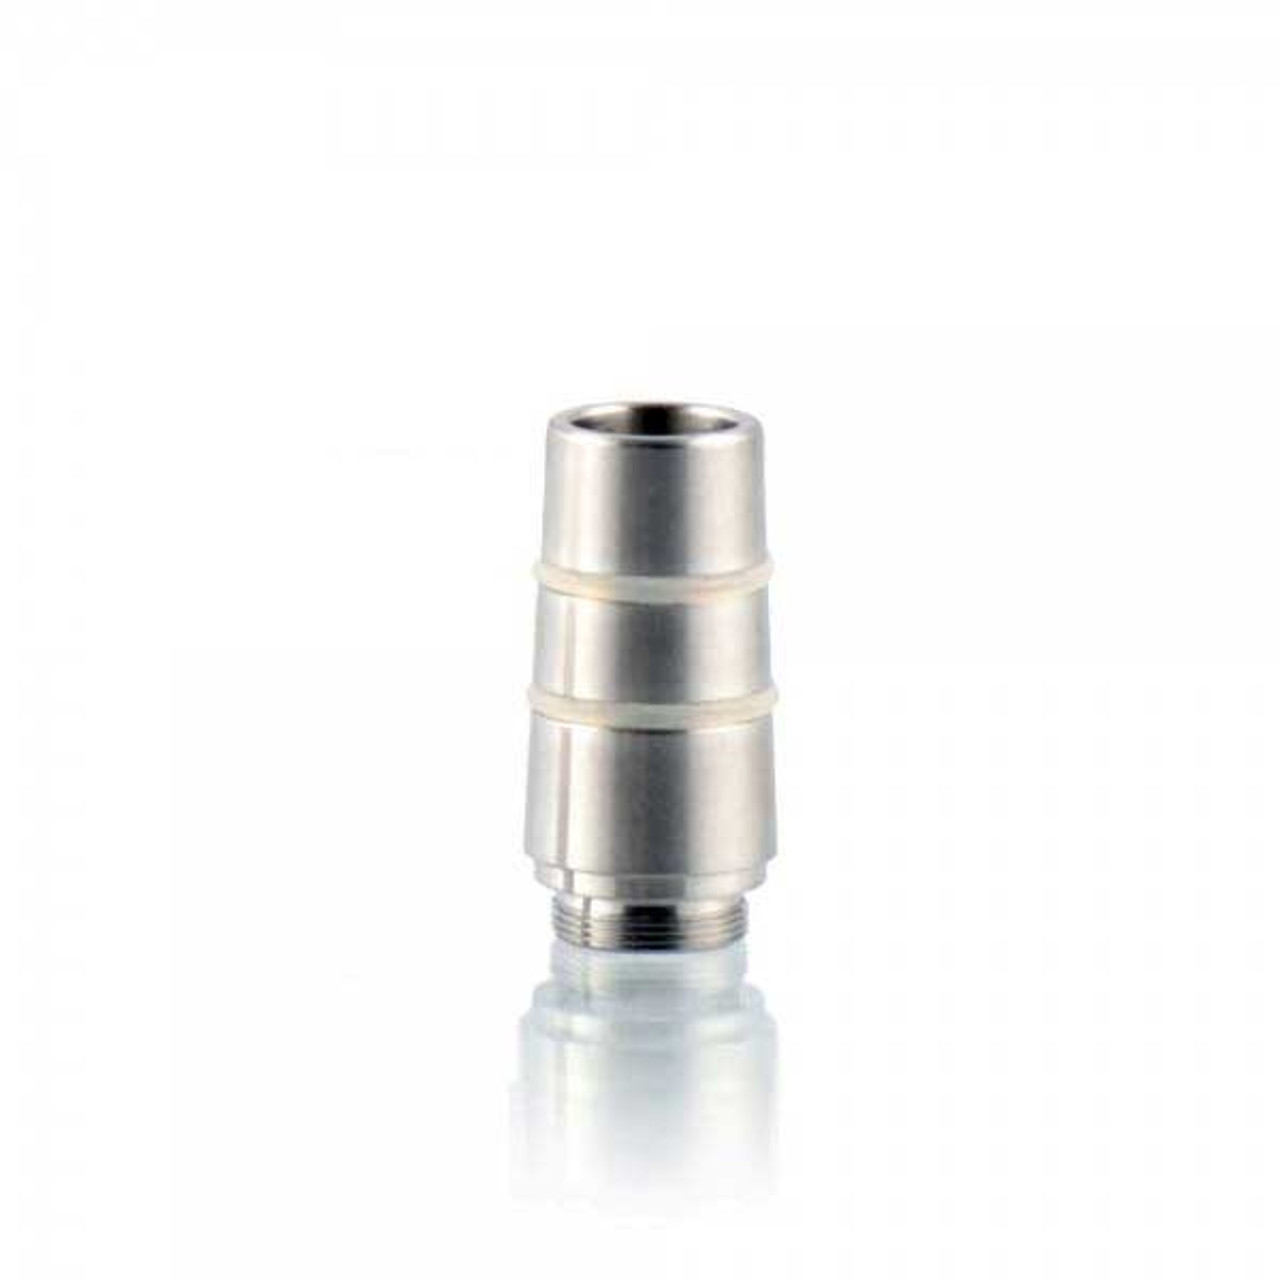 Huni Badger 14mm Adaptor